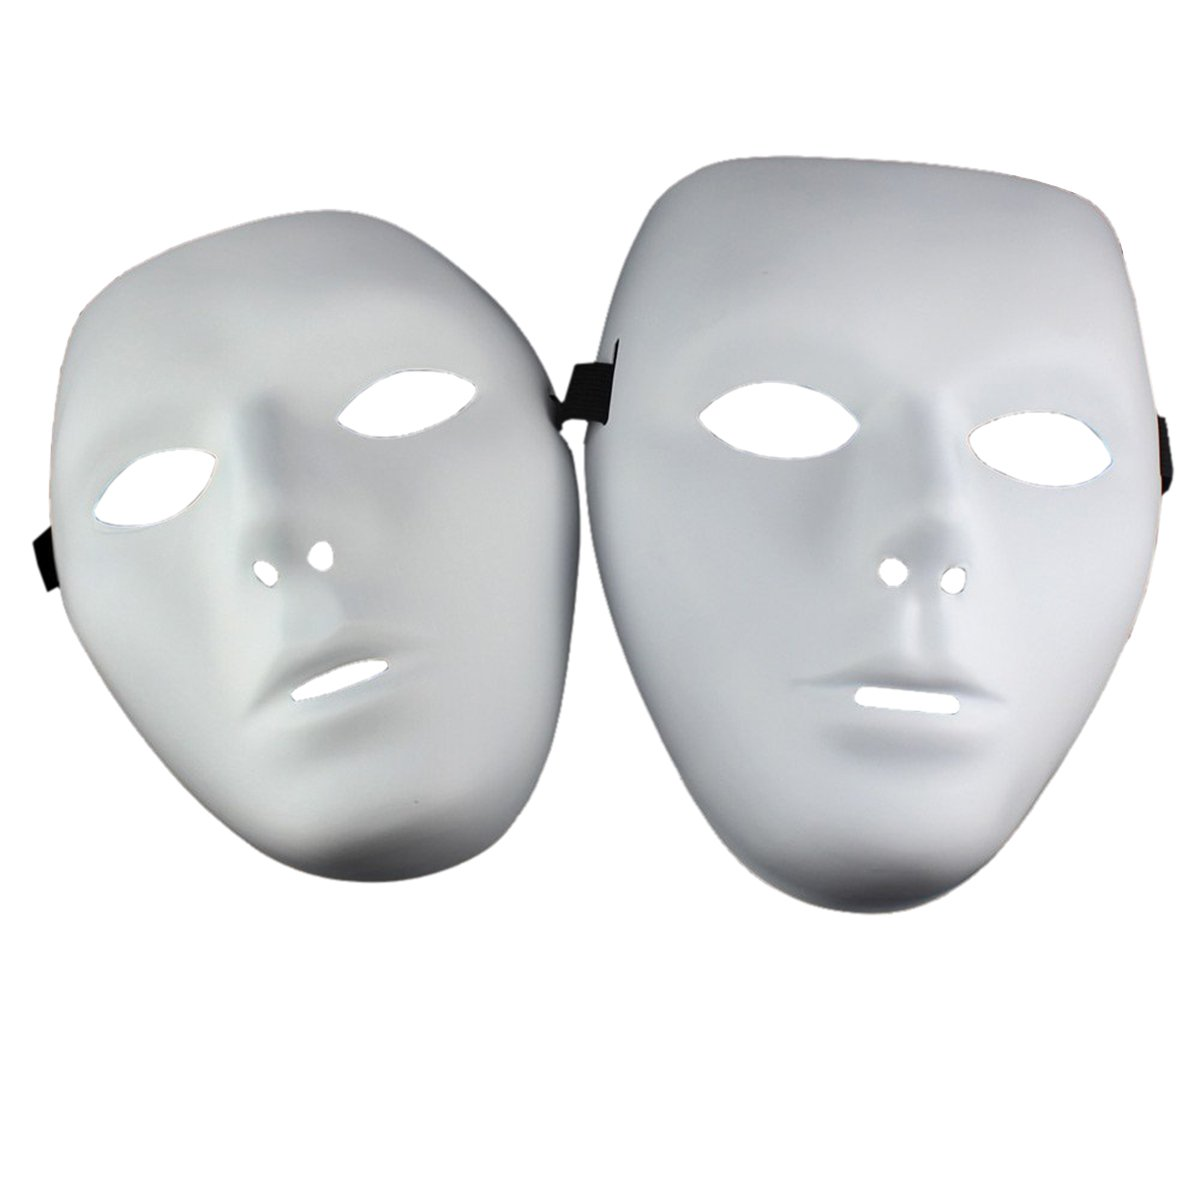 THEE 2 pairs Hiphop Mask Halloween Cosplay Costume Party White ZFFZCS2